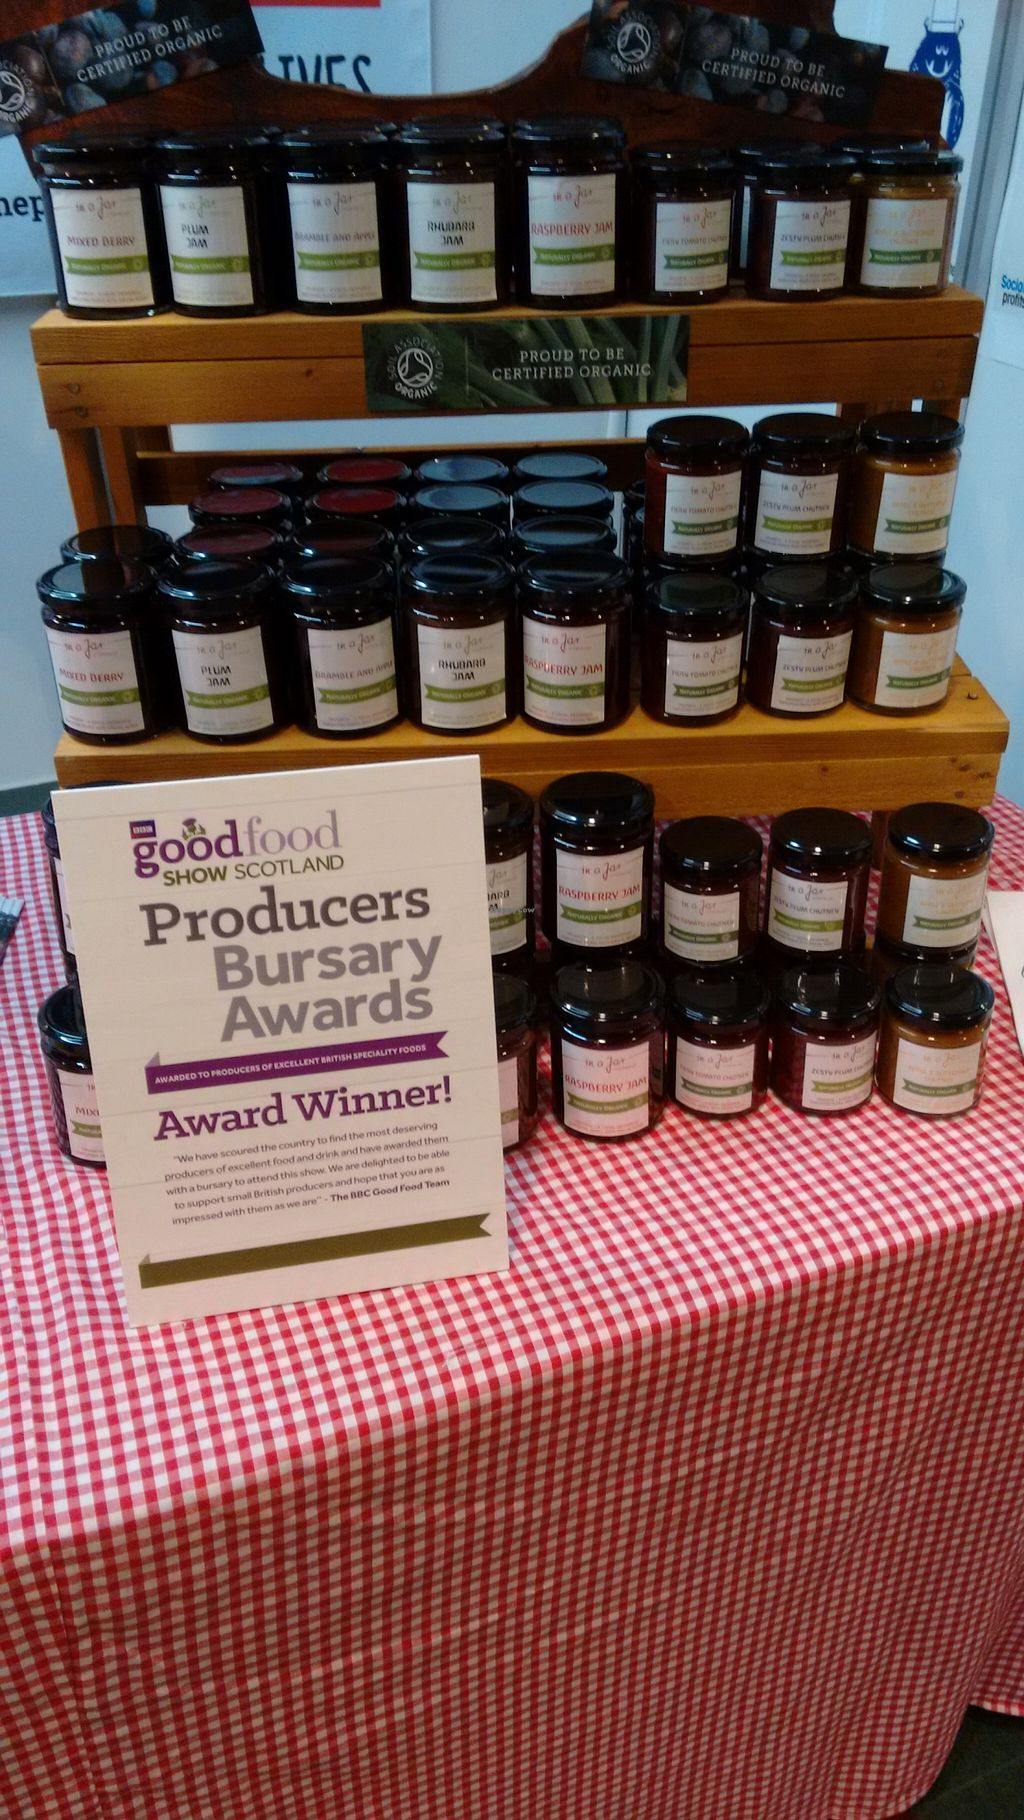 """Photo of CLOSED: In a Jar  by <a href=""""/members/profile/craigmc"""">craigmc</a> <br/>Award winning <br/> November 17, 2015  - <a href='/contact/abuse/image/53582/125289'>Report</a>"""